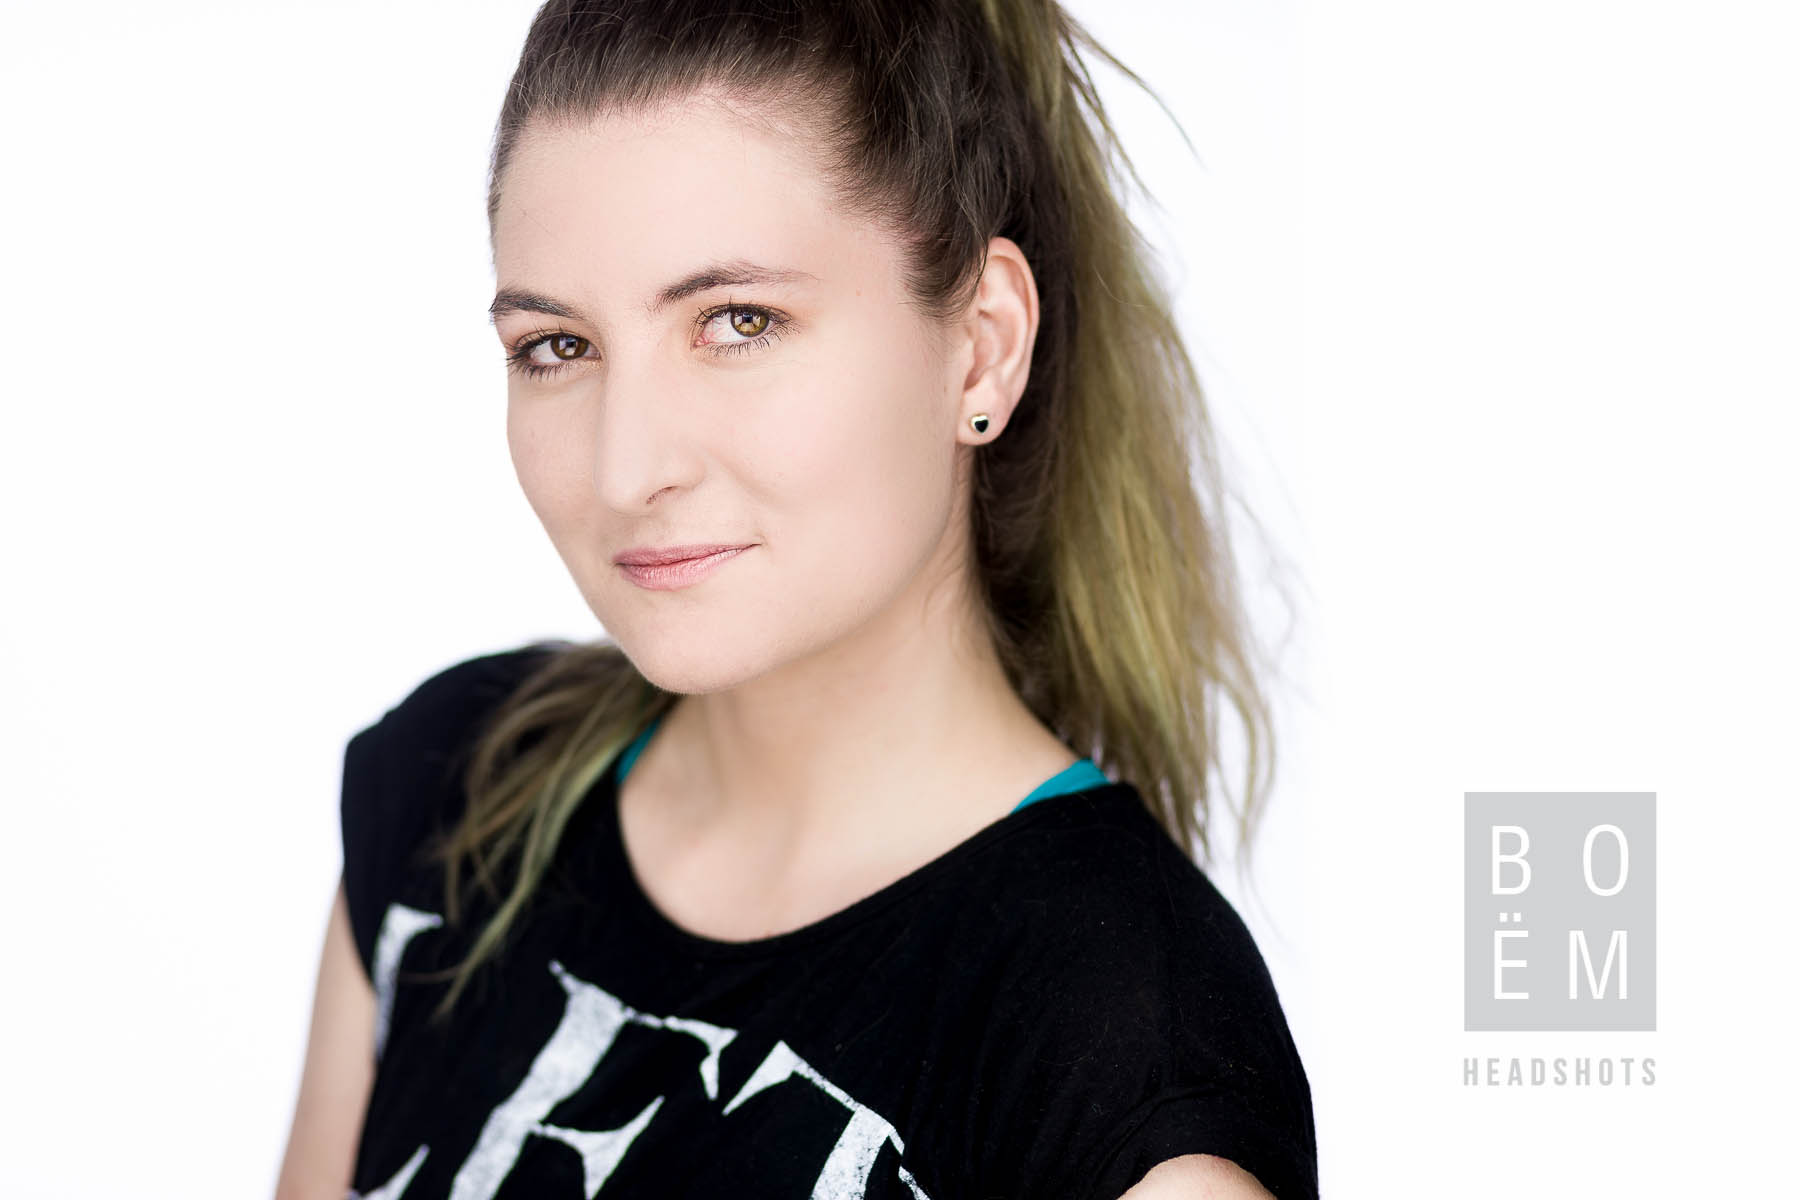 A quick look at my headshot session with Haley today, she's an aspiring actress here in Adelaide looking to break into the market a little more, it was awesome to meet her!